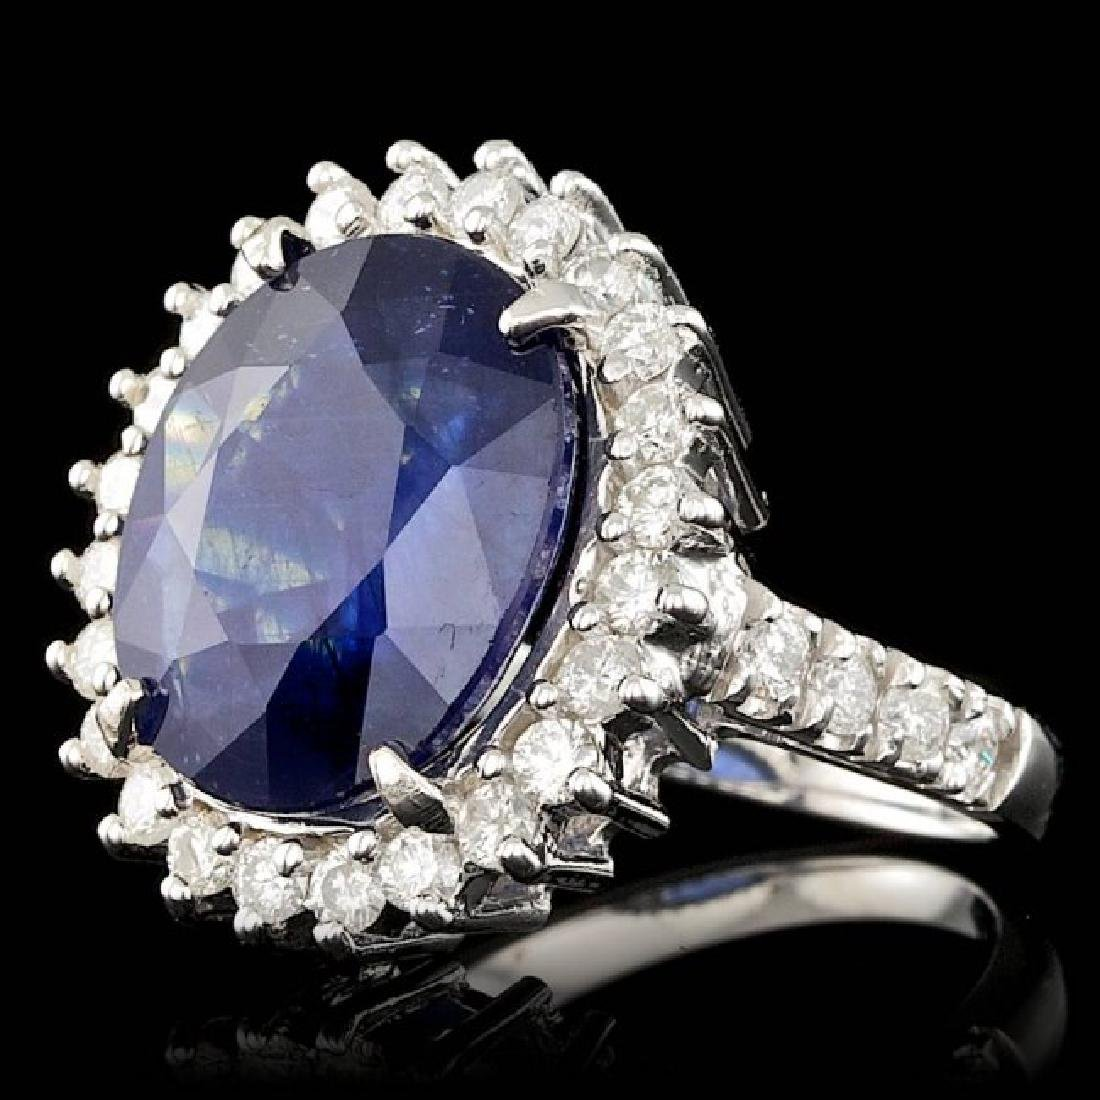 14k Gold 9.00ct Sapphire 1.10ct Diamond Ring - 2